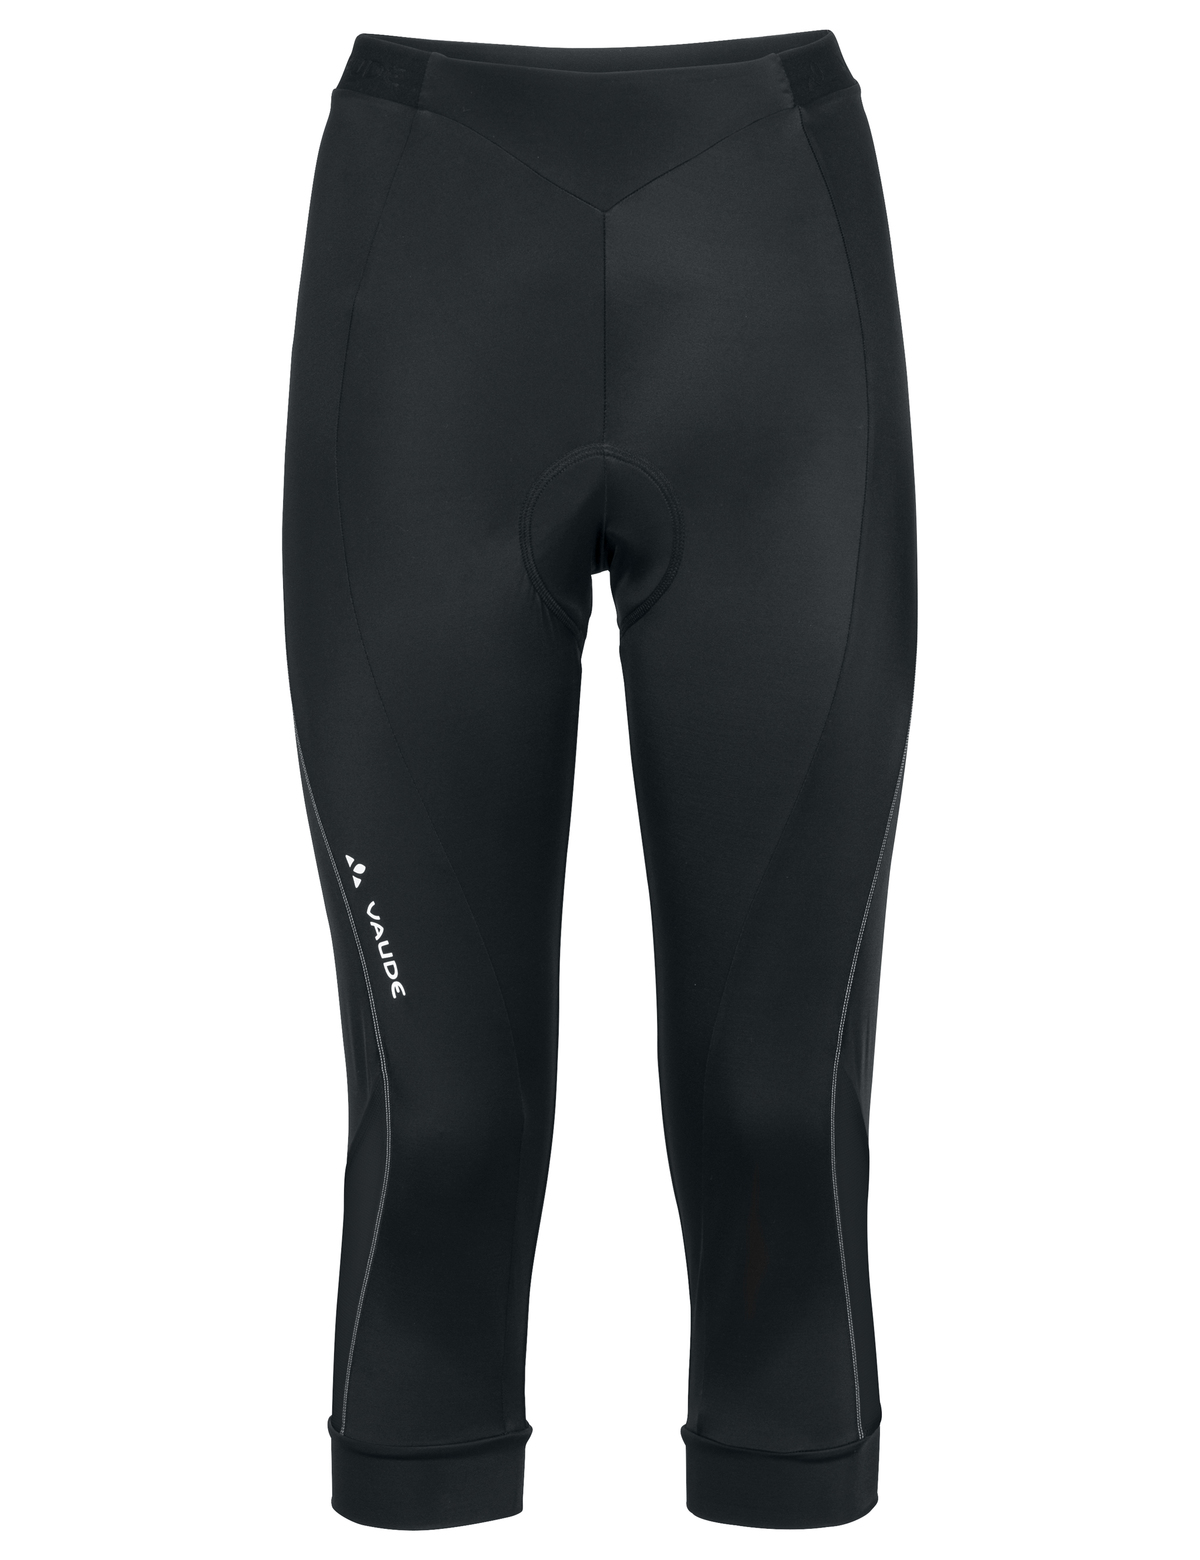 VAUDE Women´s Advanced 3/4 Pants II black Größe 34 - schneider-sports